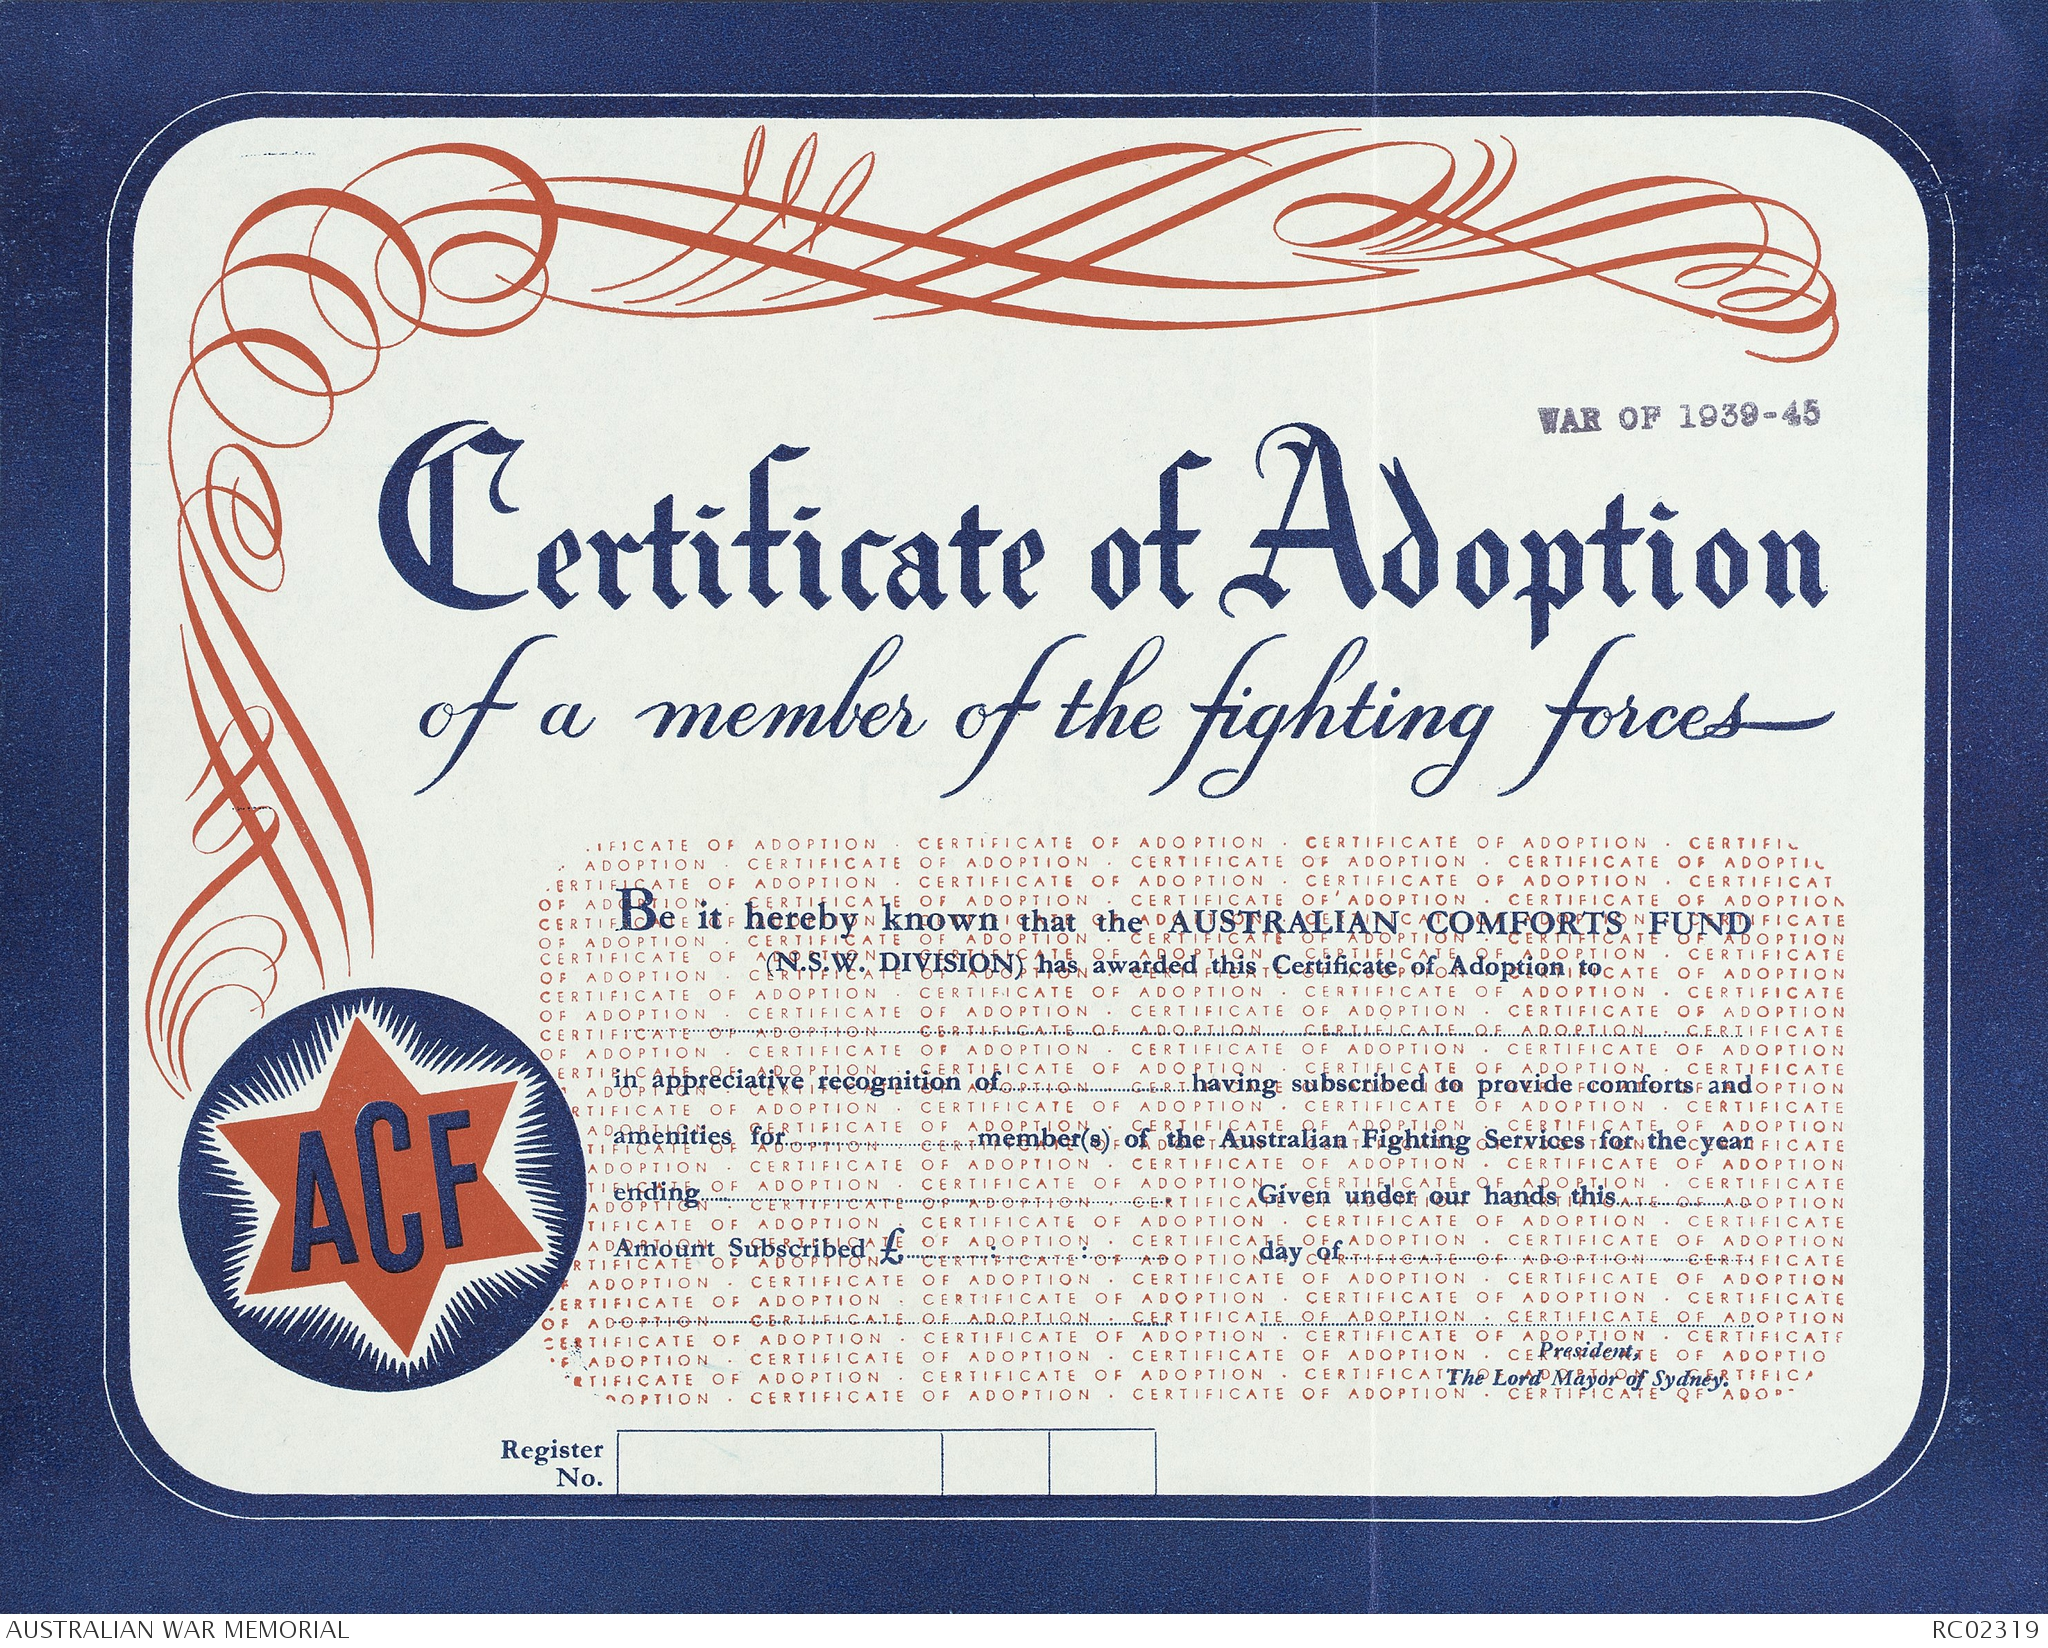 Certification Of Adoption Of A Member Of The Fighting Forces The